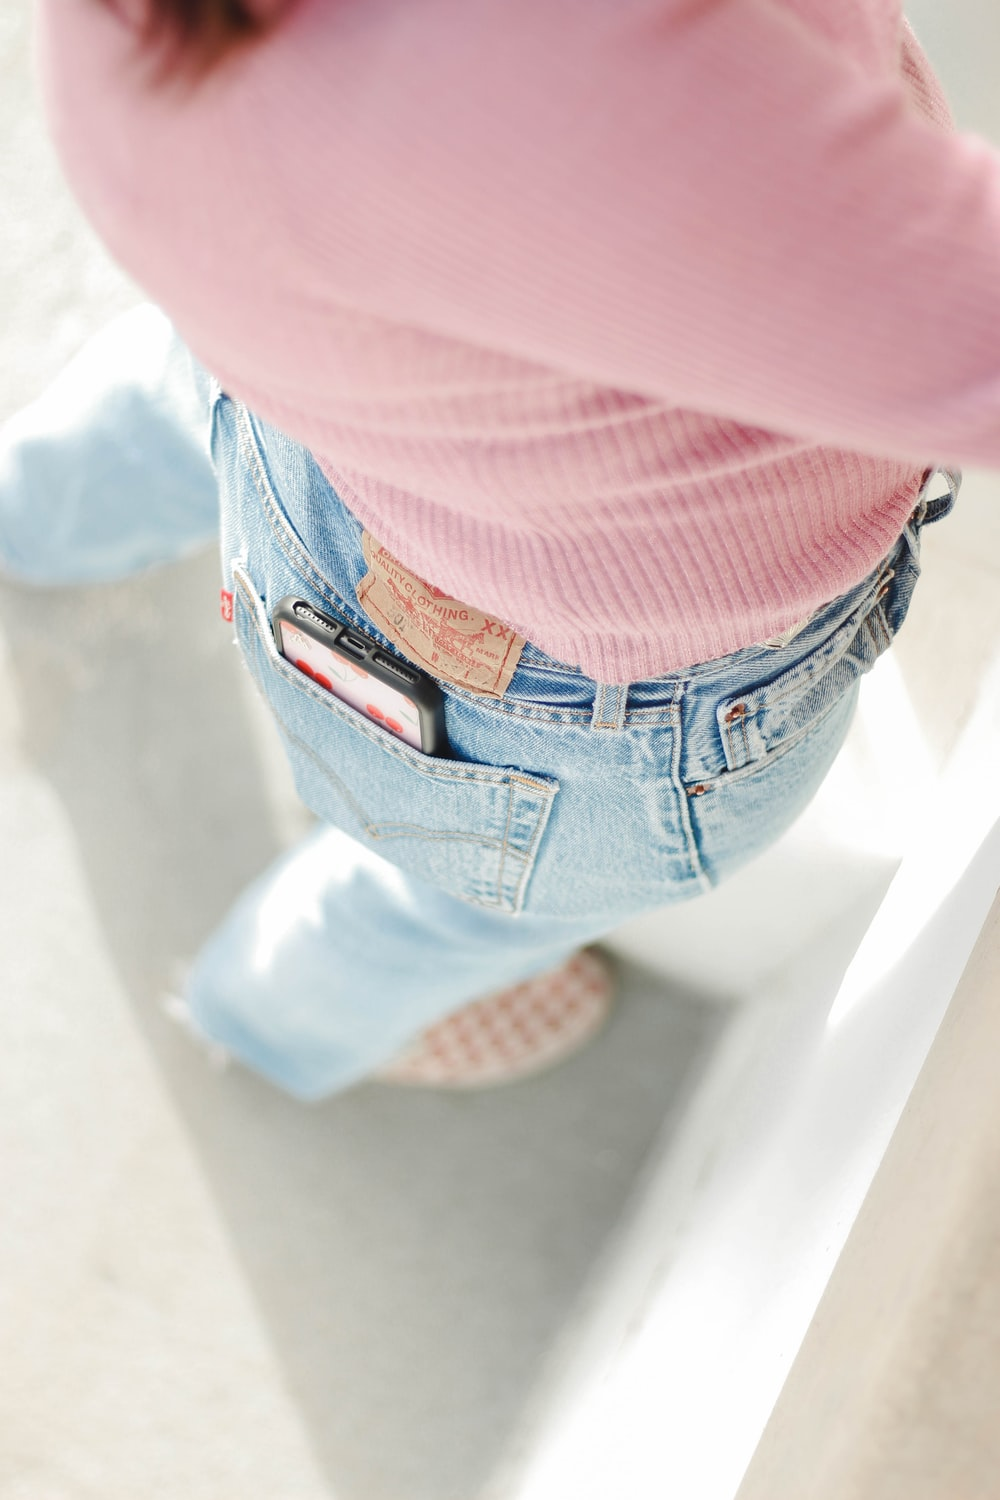 person in blue denim jeans and pink shirt